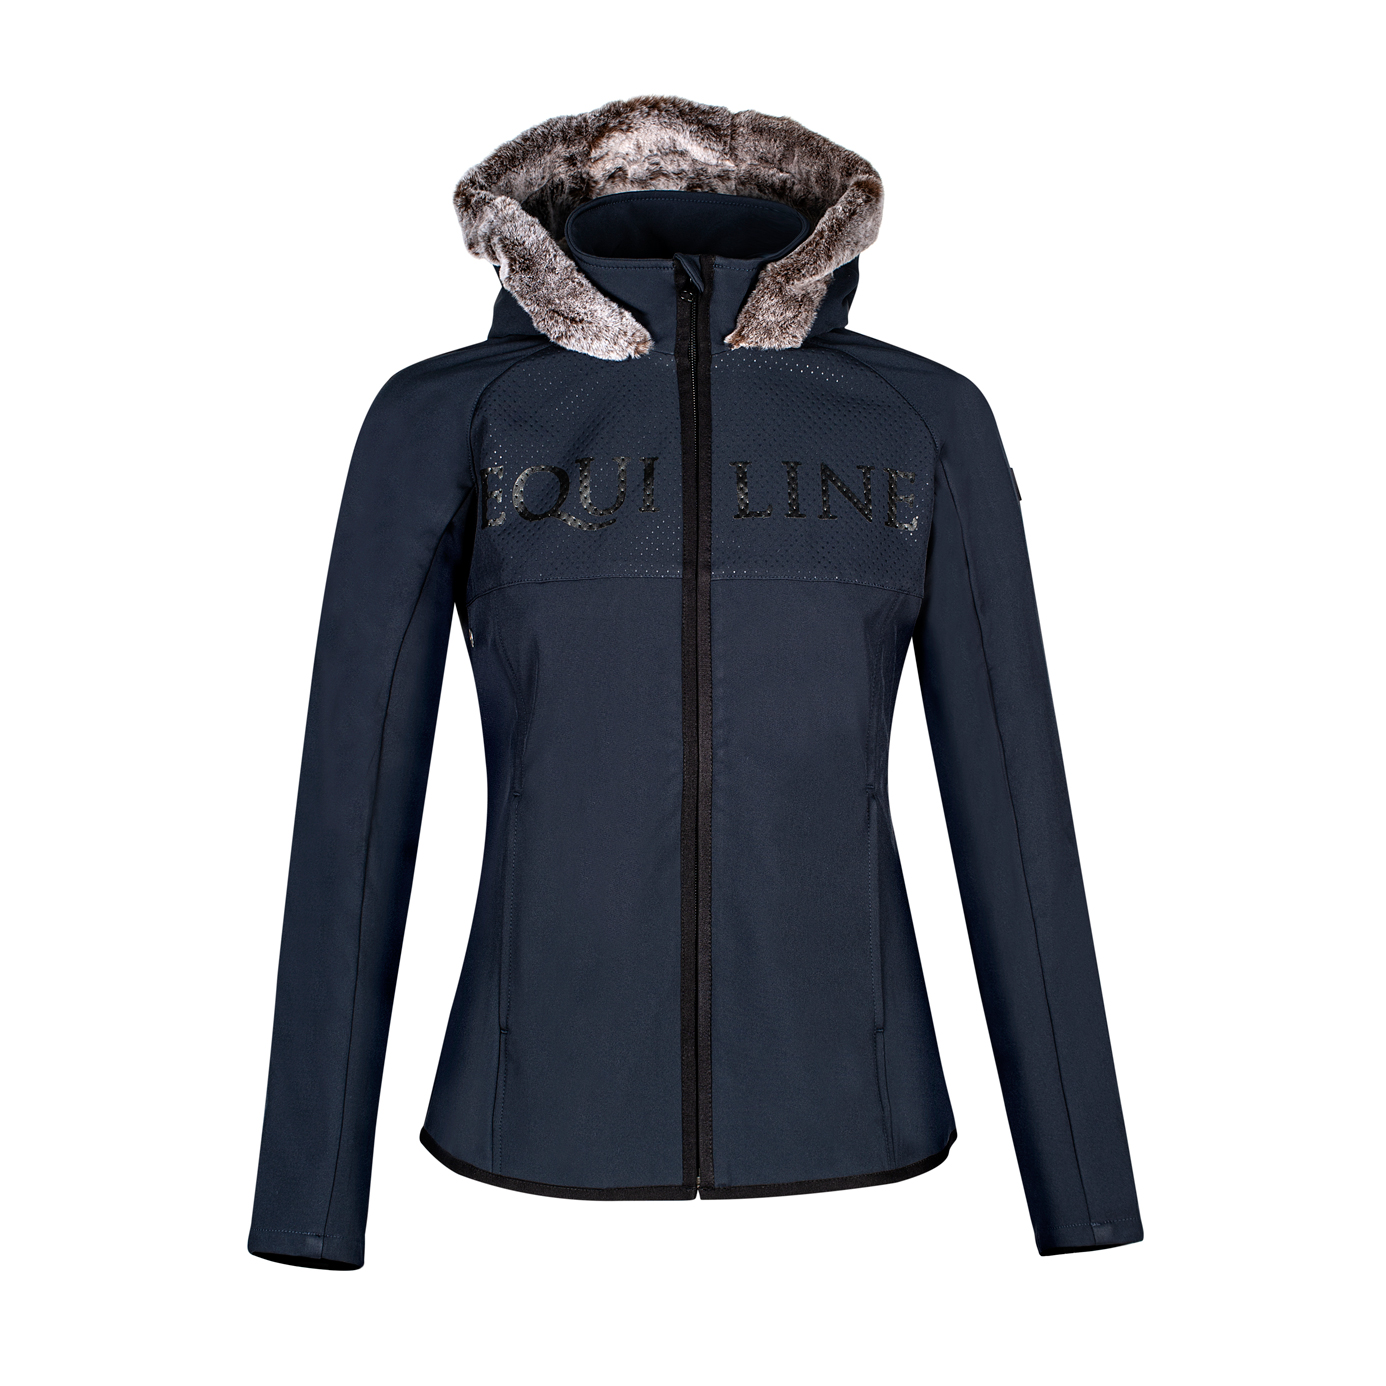 Equiline Navy Elly Ladies Equestrian Softshell Jacket